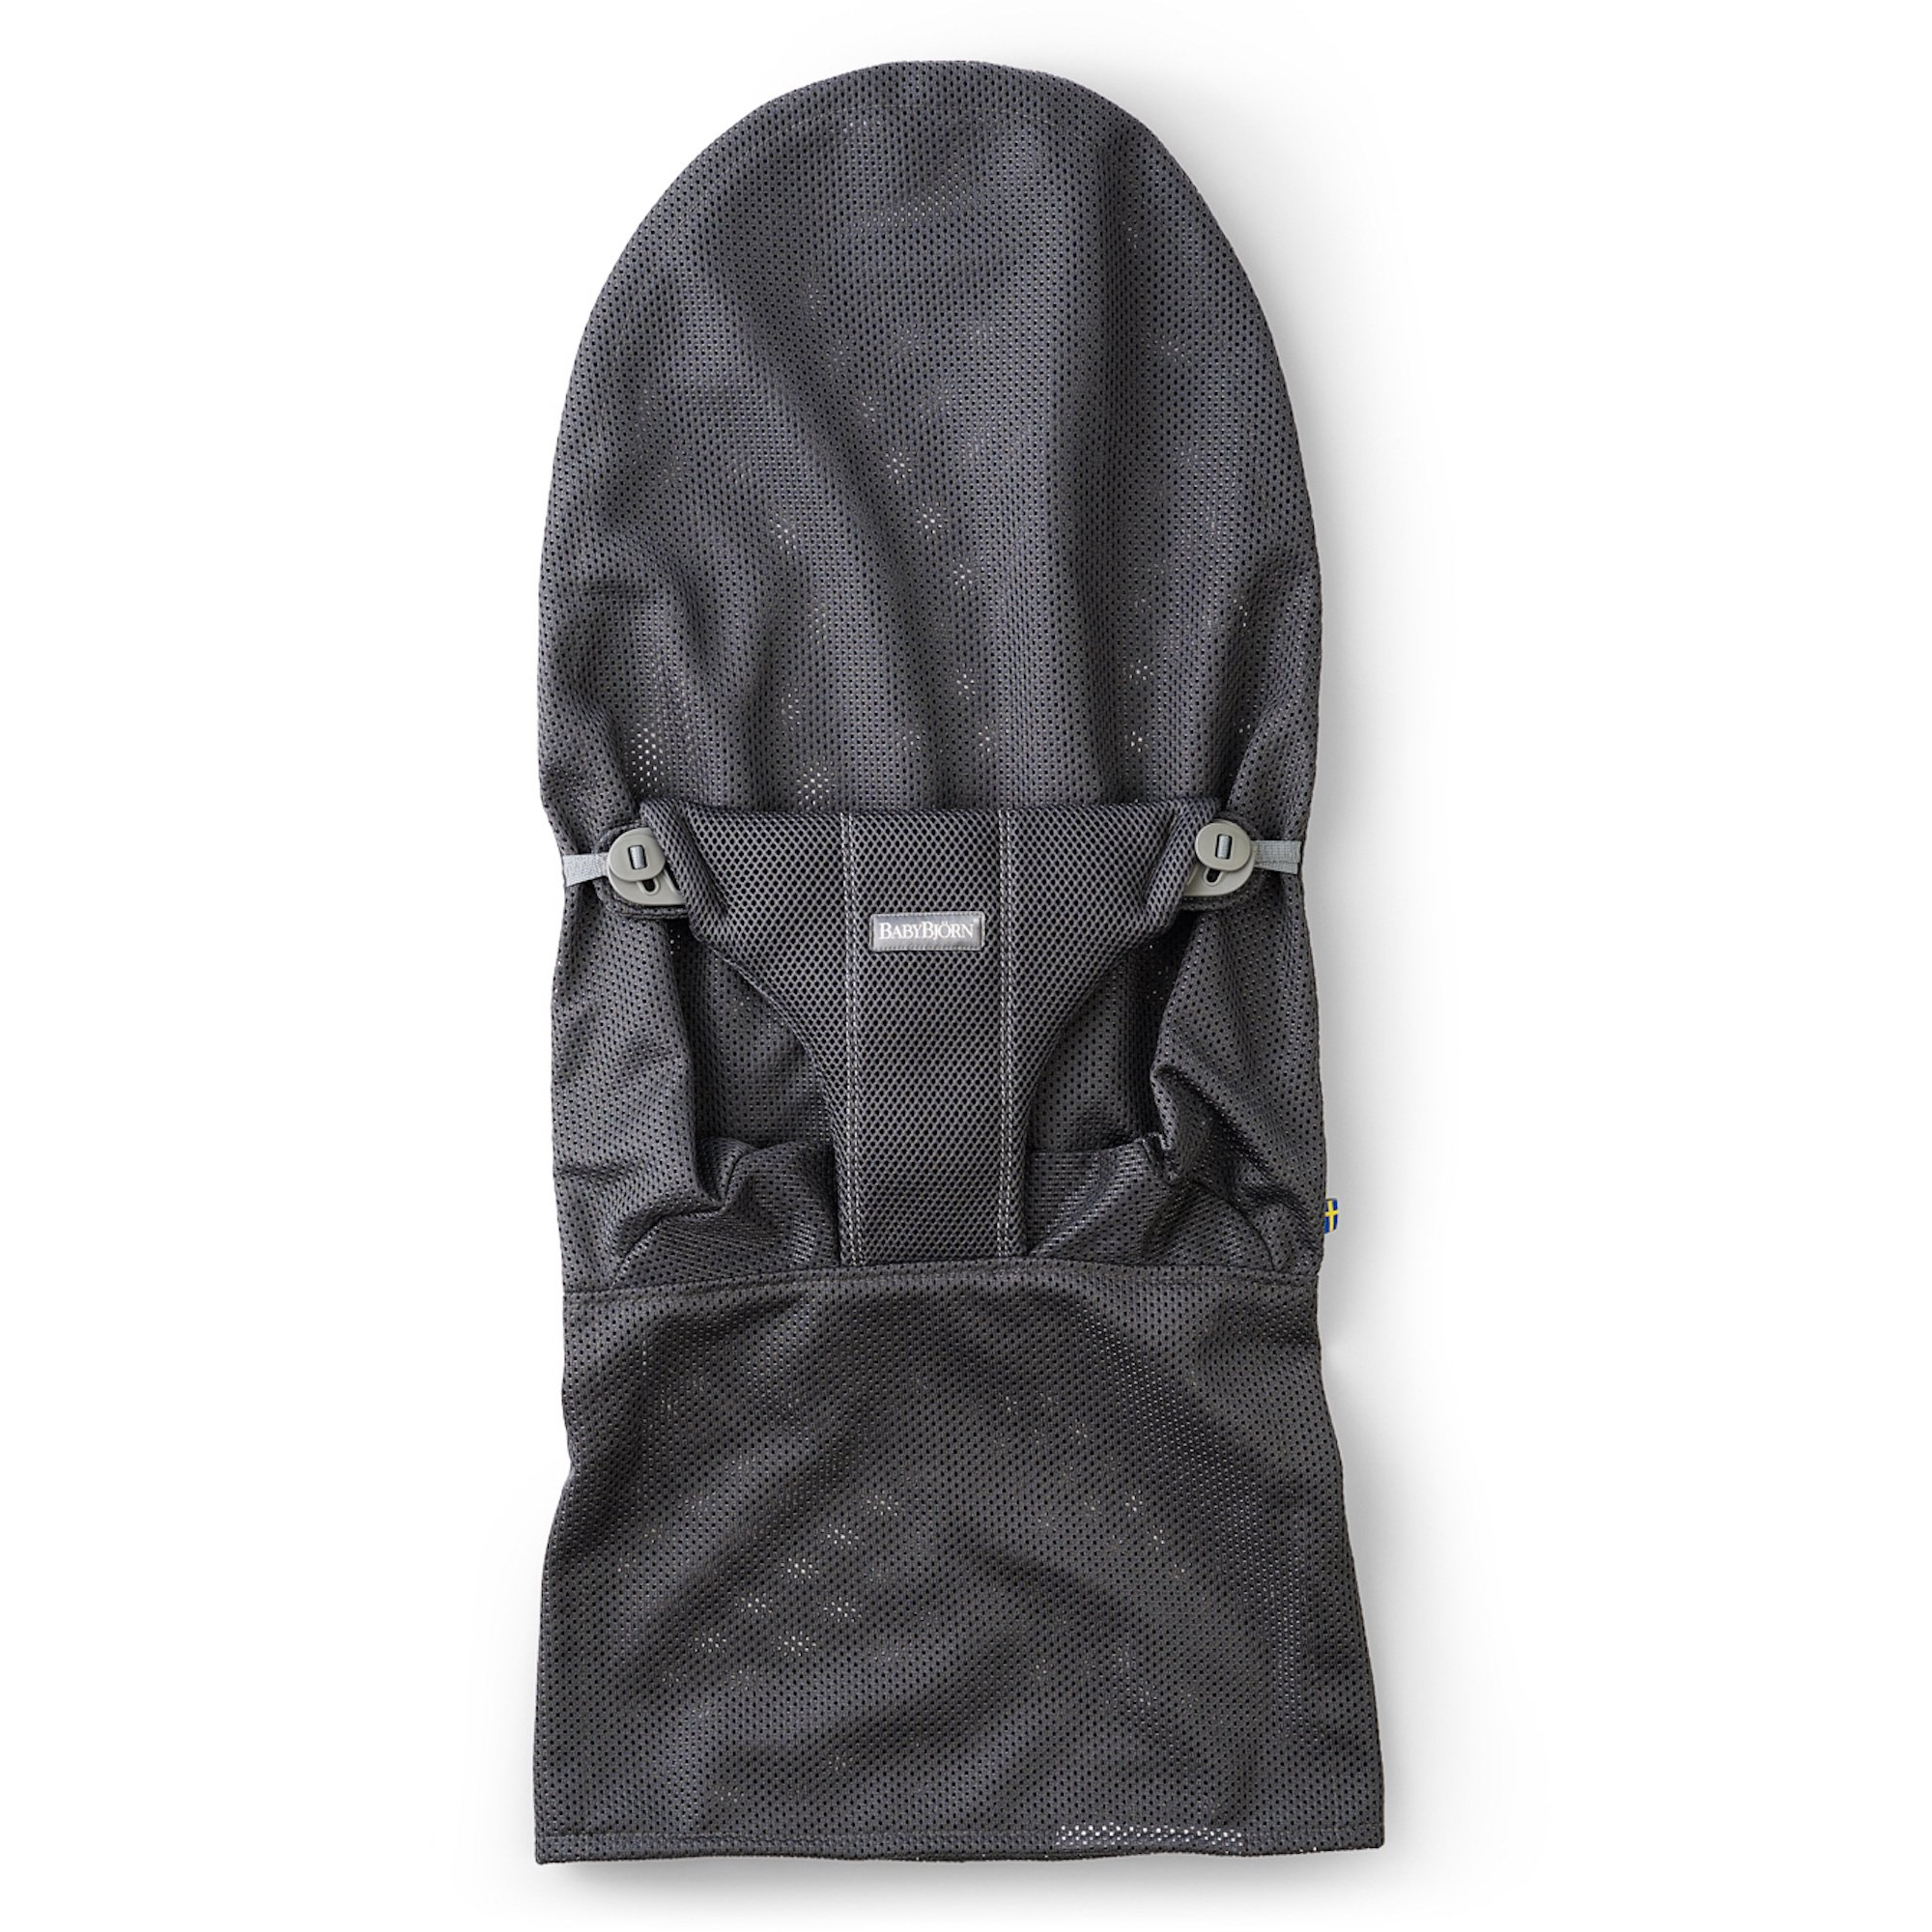 BABYBJORN BabyBjorn Fabric Seat for Bouncer - Anthracite, Mesh, Anthracite